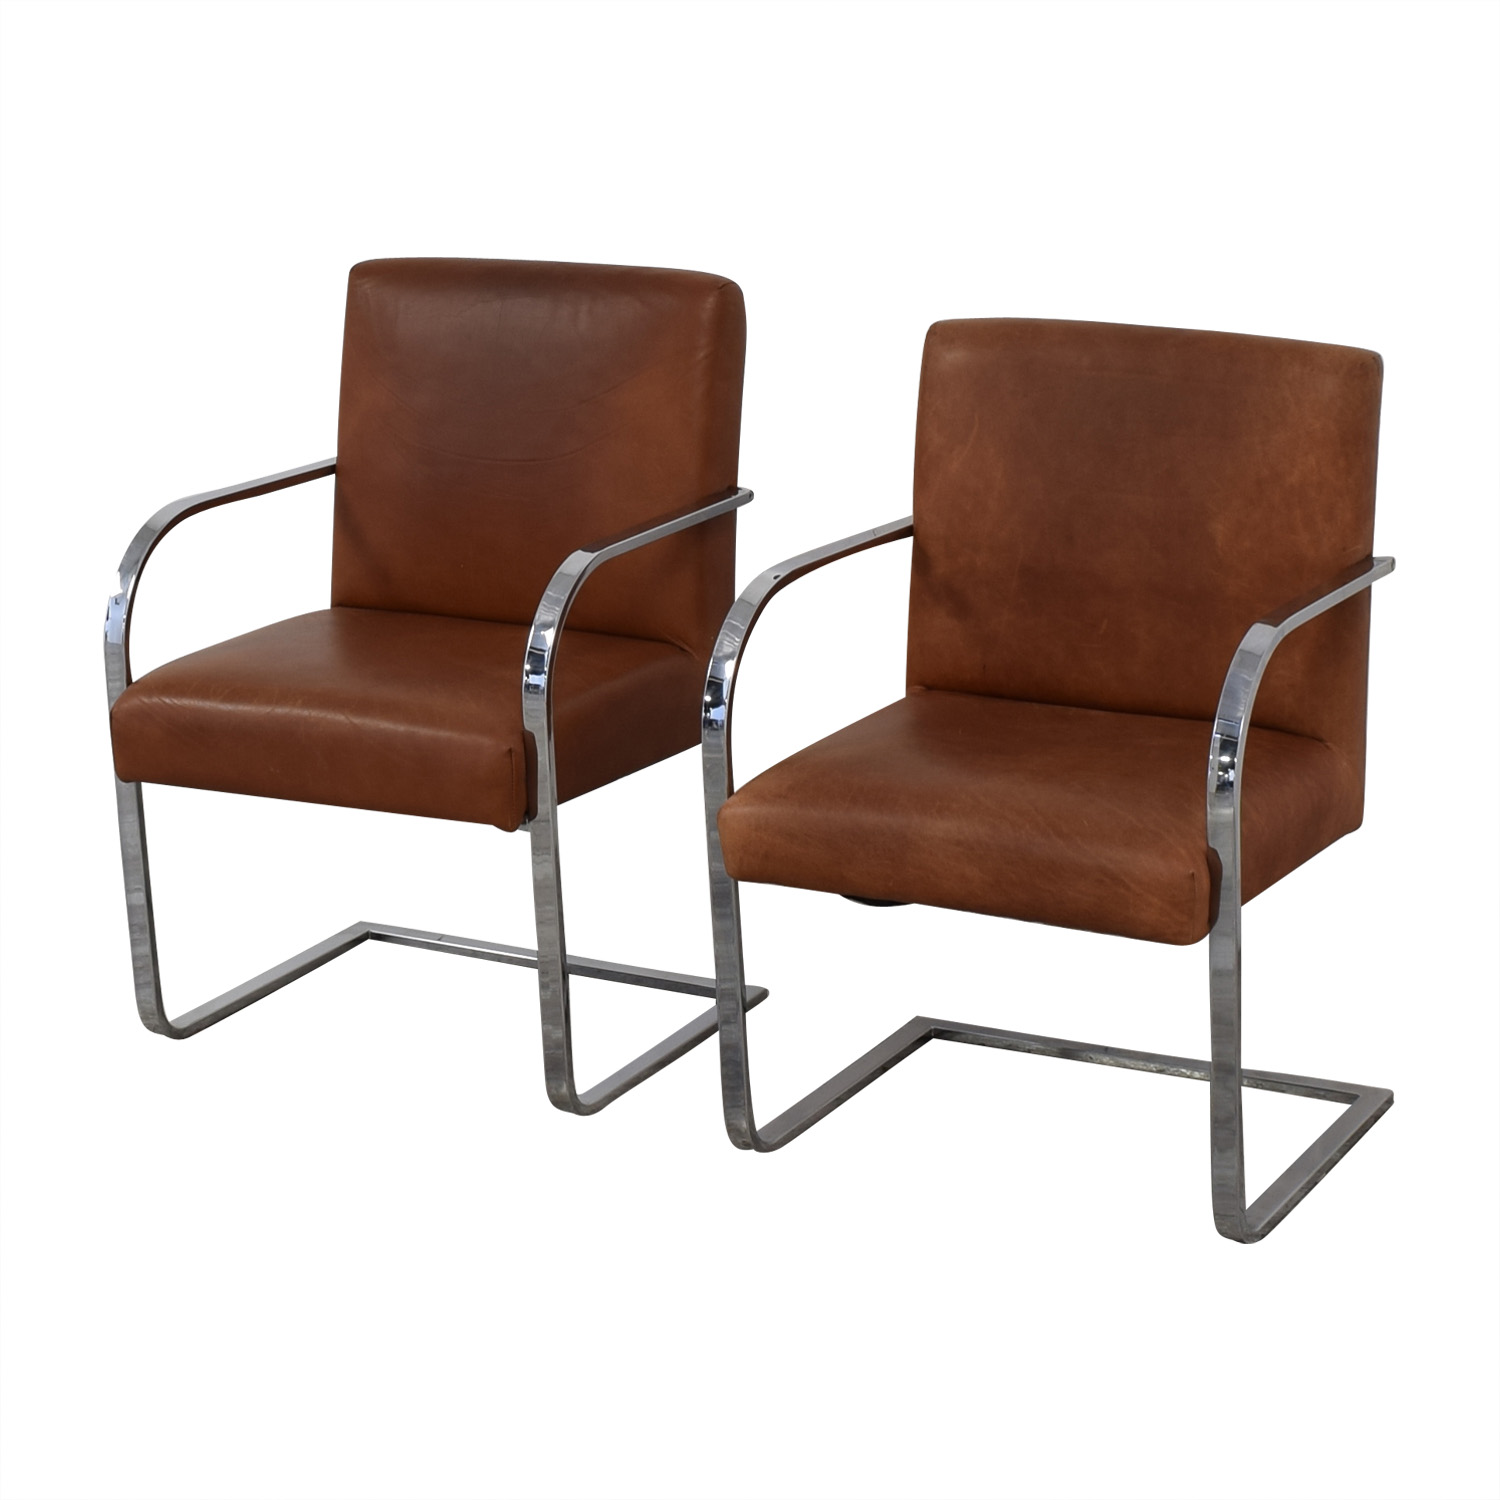 Williams Sonoma Mercer Dining Armchairs / Chairs